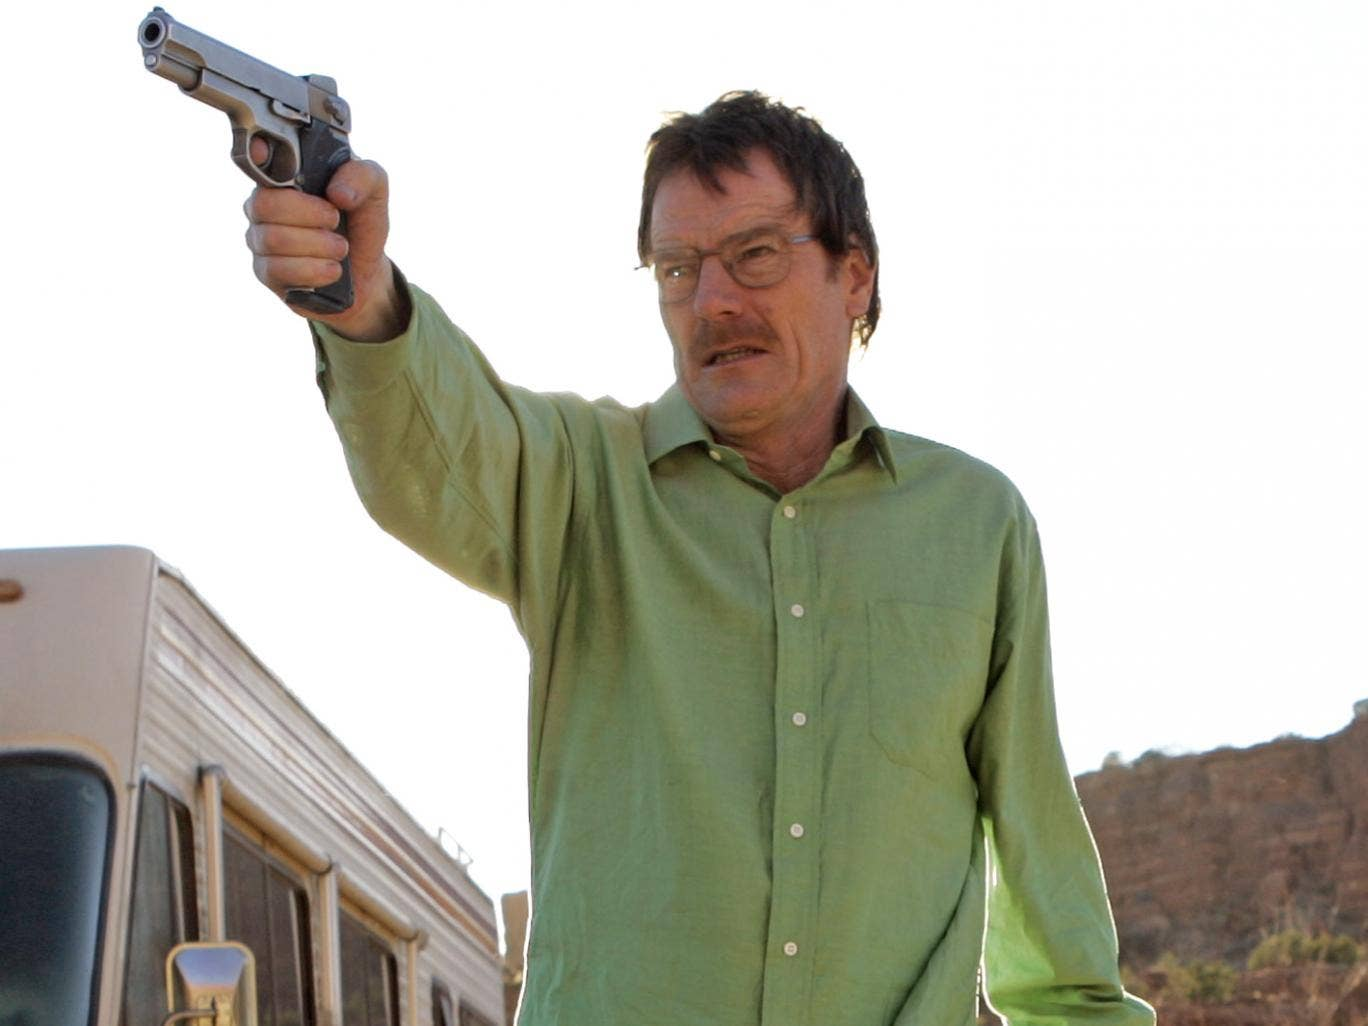 Bryan Cranston as Walter White, in the acclaimed series 'Breaking Bad'